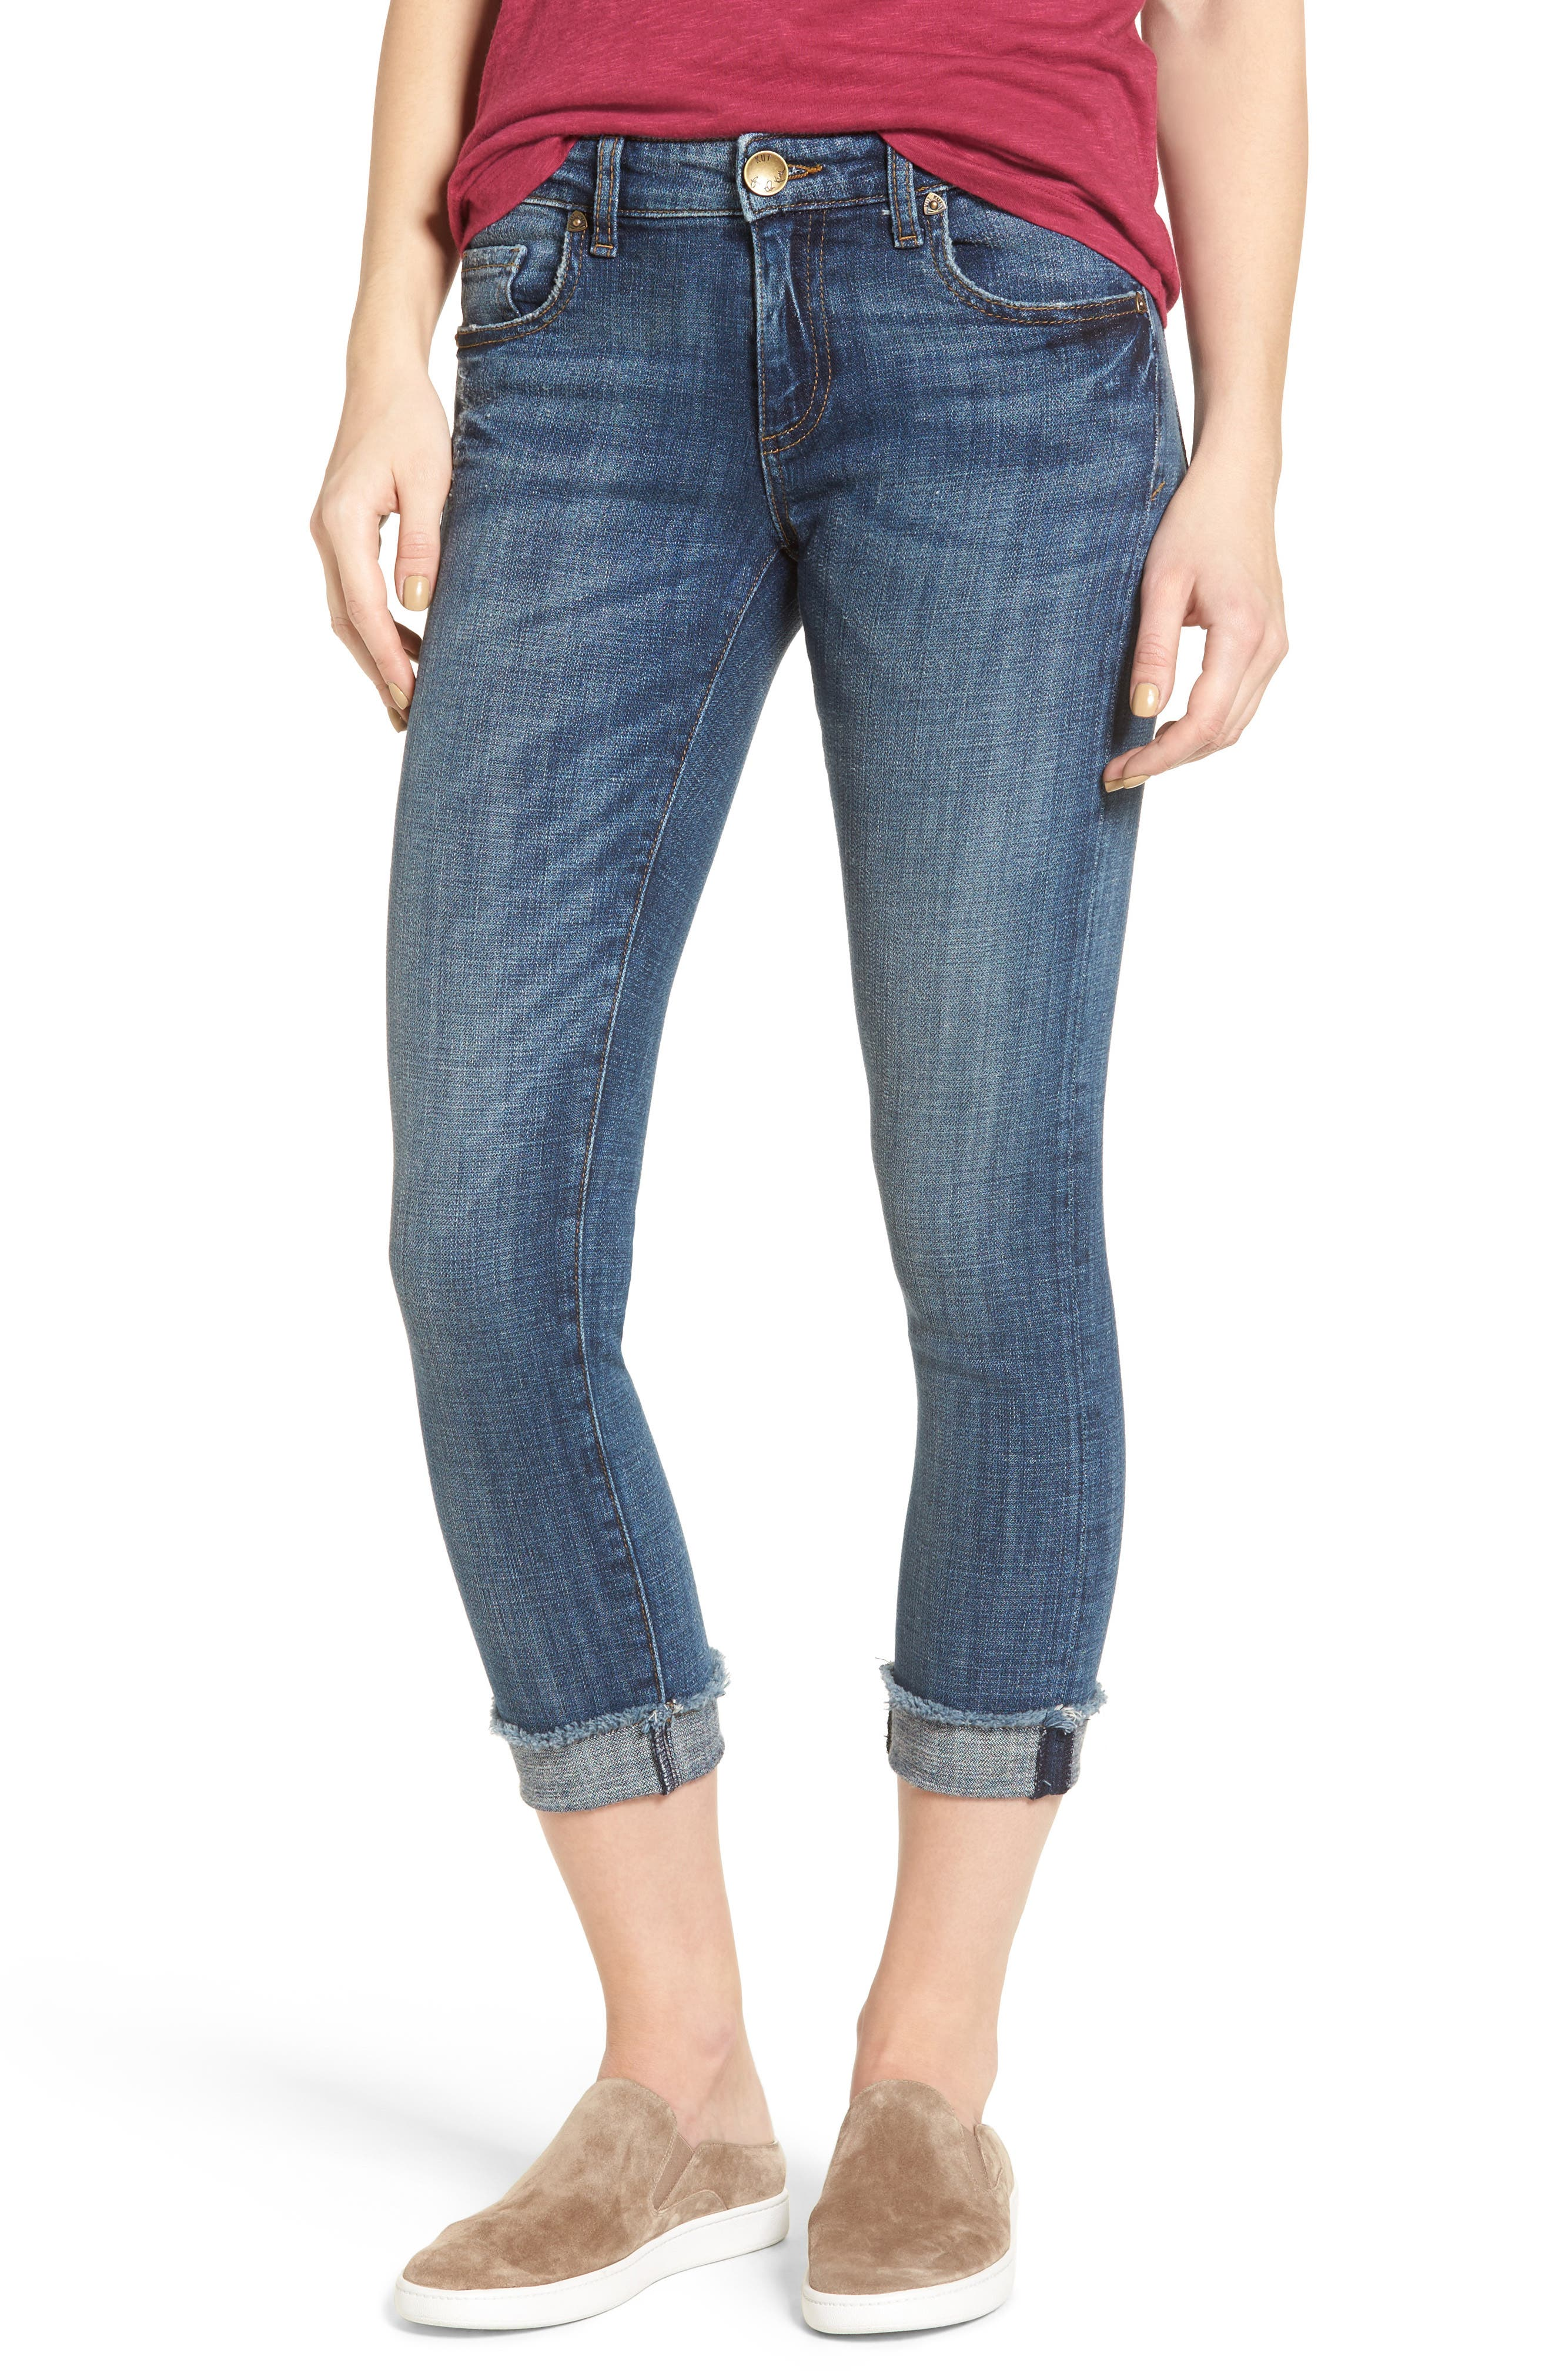 Alternate Image 1 Selected - KUT from the Kloth Amy Stretch Crop Skinny Jeans (Dominant)